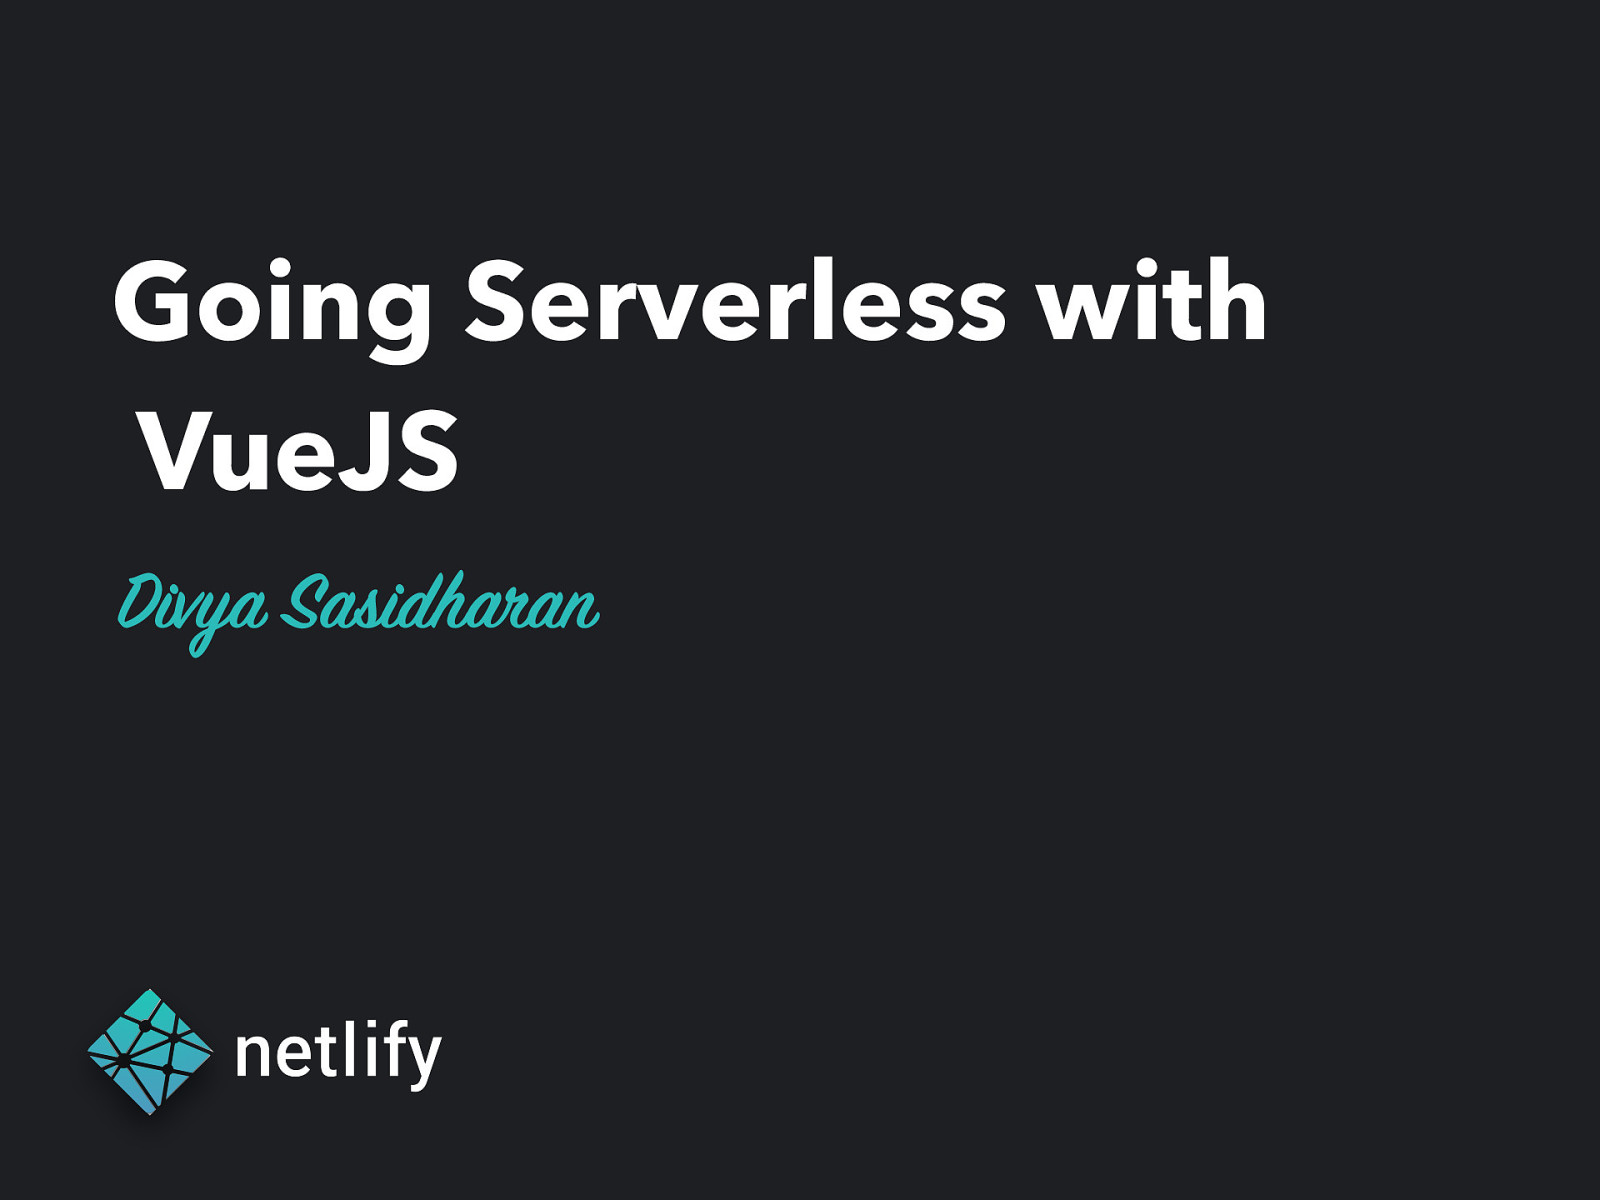 Going Serverless with VueJS